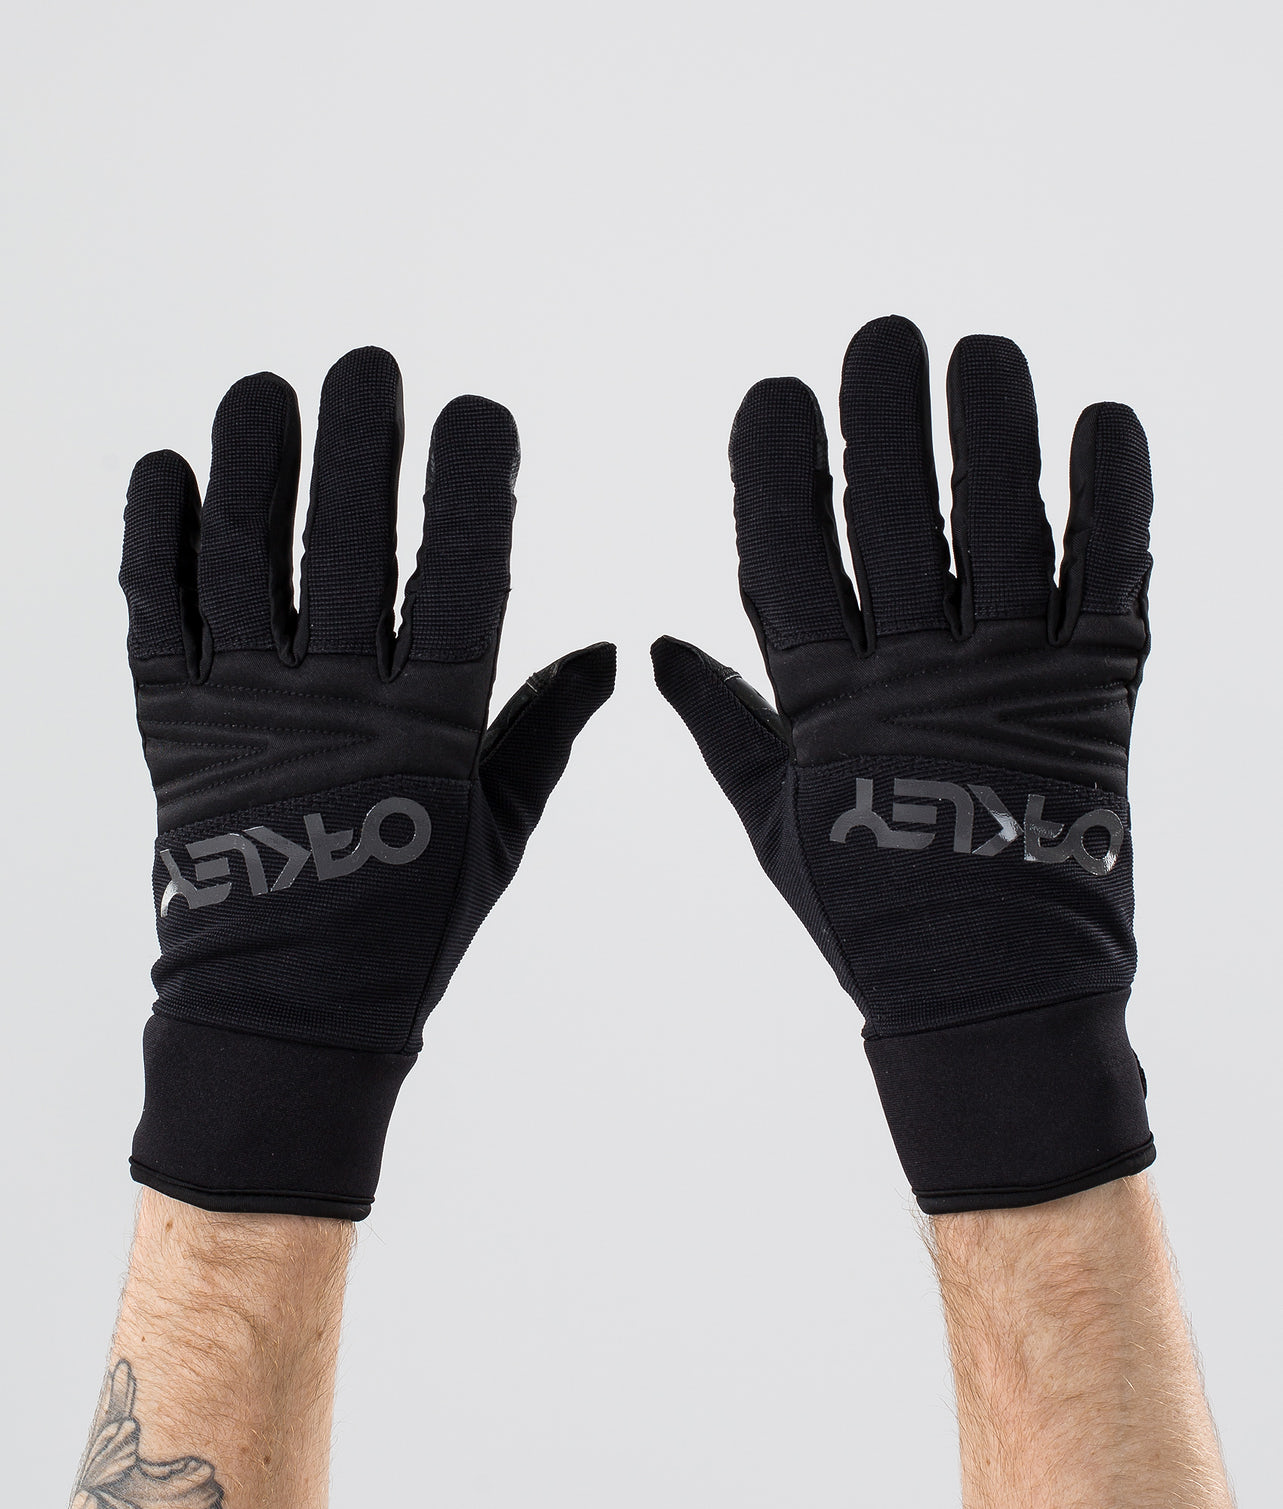 Buy Factory Park Ski Gloves from Oakley at Ridestore.com - Always free shipping, free returns and 30 days money back guarantee